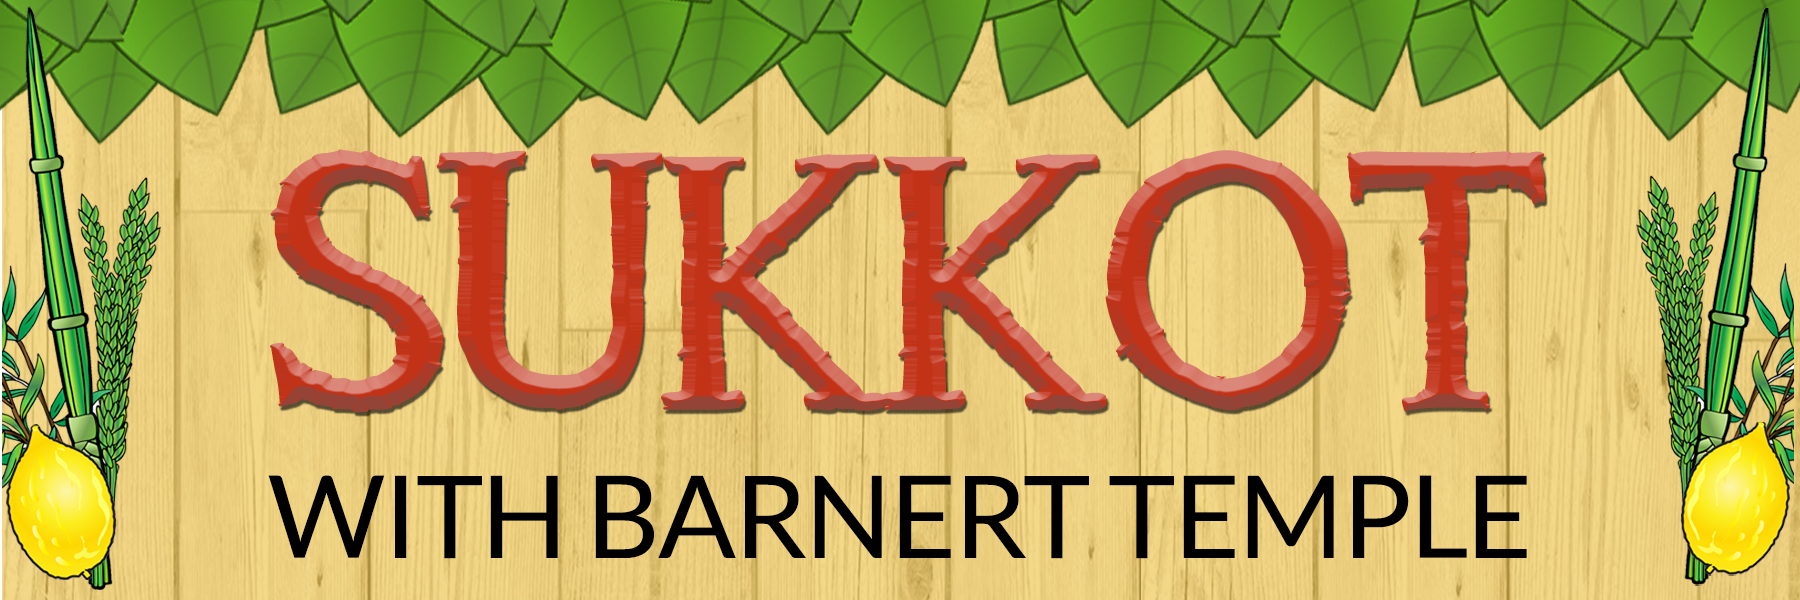 """<a href=""""https://www.barnerttemple.org/event/sukkot-fun-2021""""                                     target="""""""">                                                                 <span class=""""slider_title"""">                                     September 20 